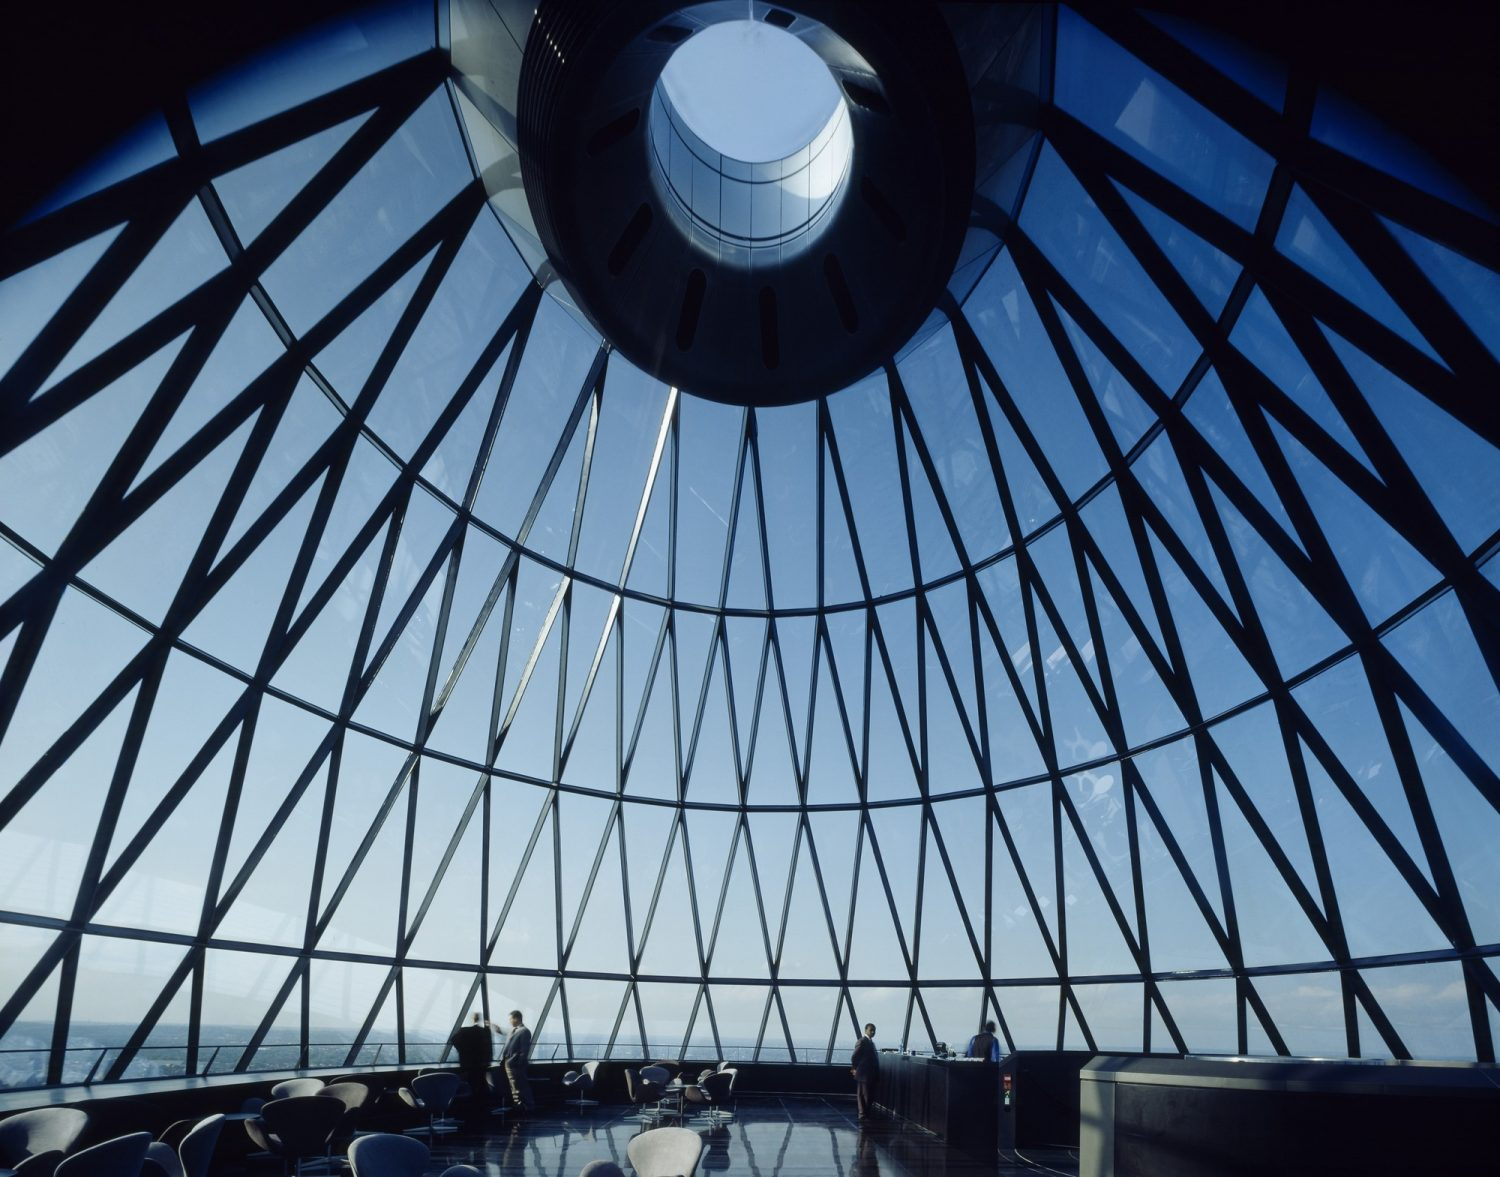 30 st mary axe The Gherkin IGS Magazine Roof Glass